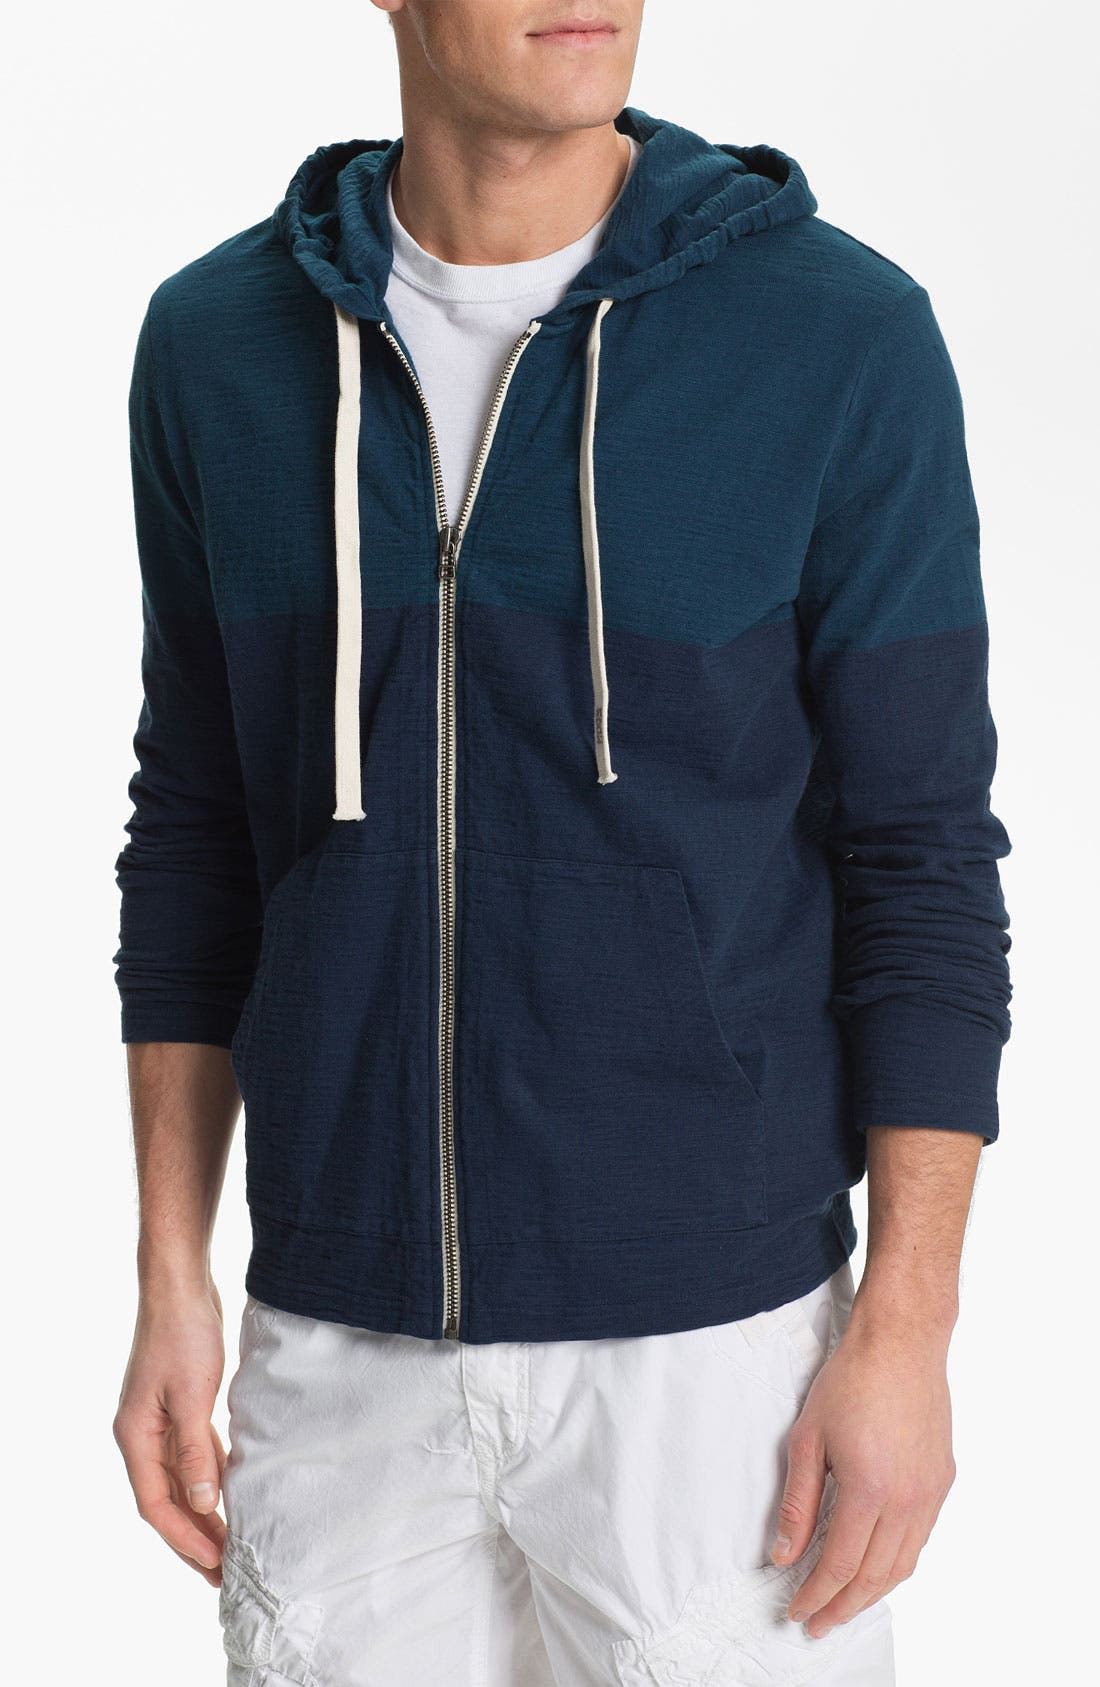 Alternate Image 1 Selected - Edun Slub Colorblock Zip Hoodie